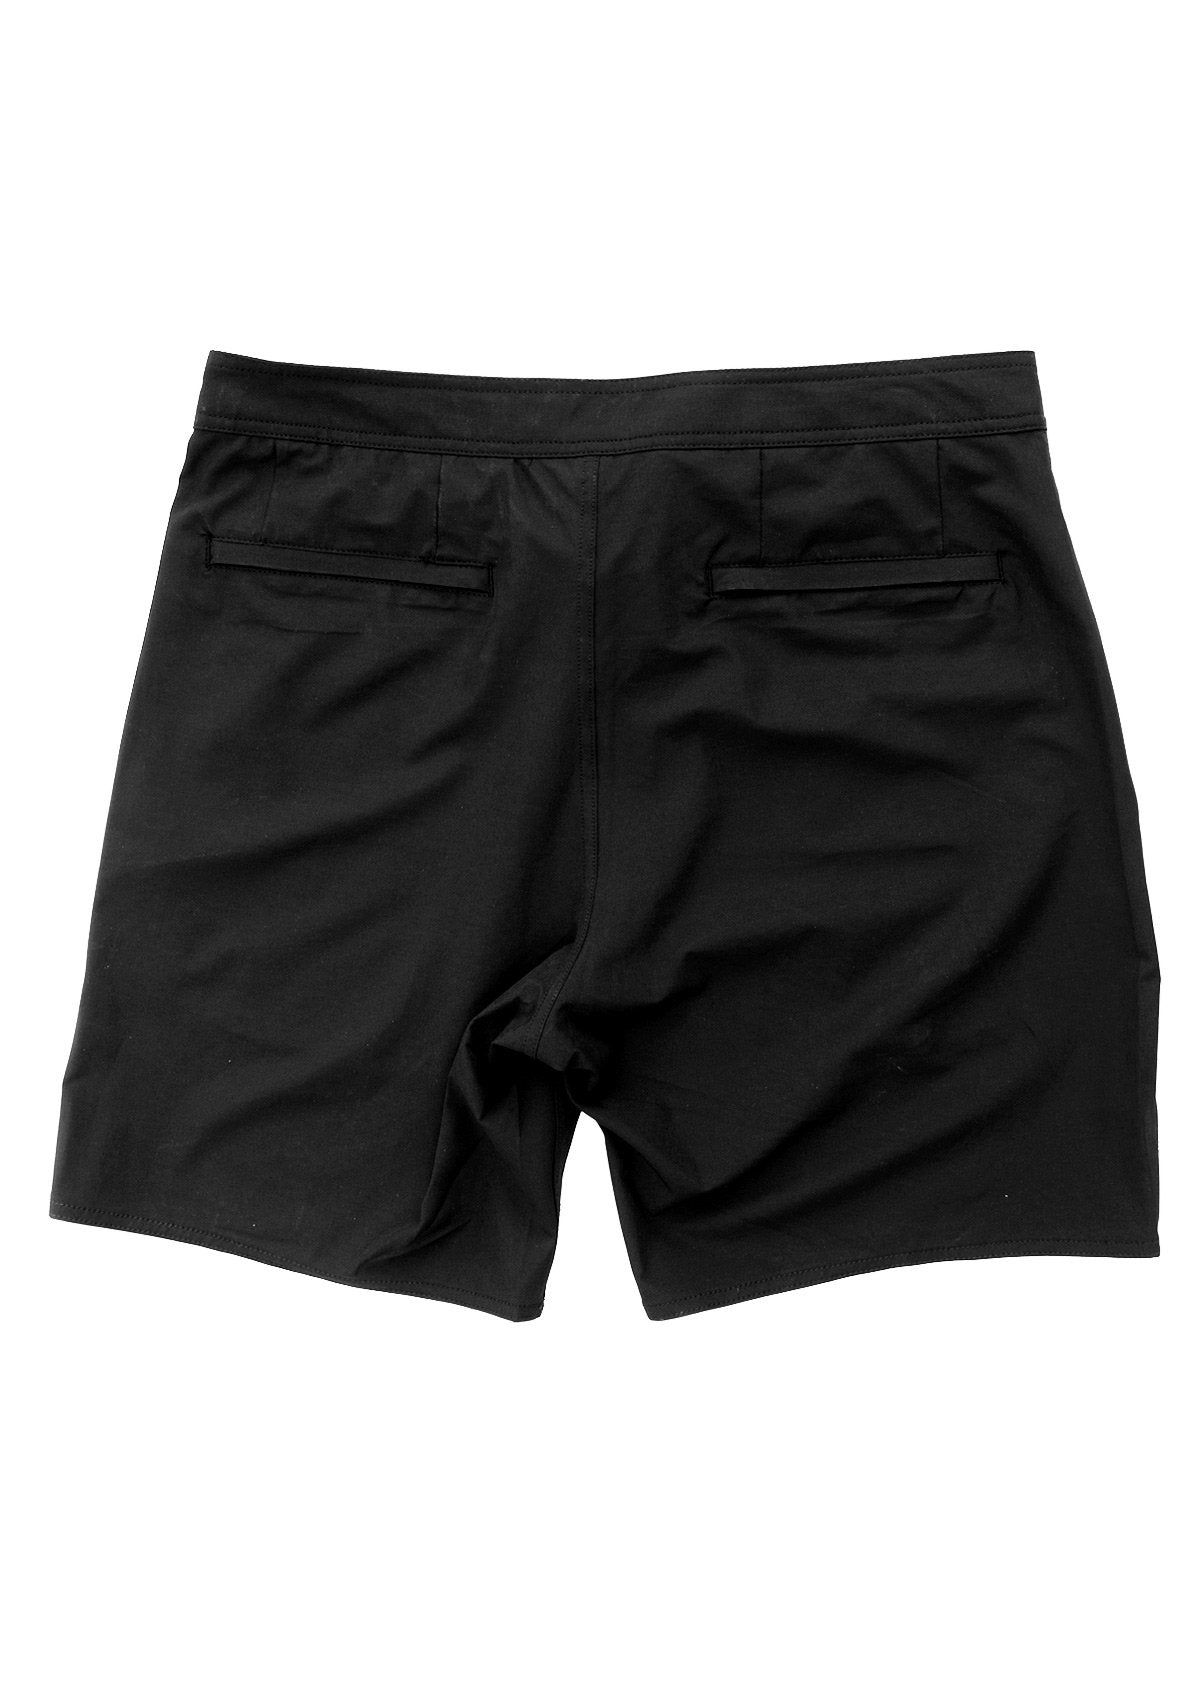 needessentials all rounder mens surfing boardshorts non branded black